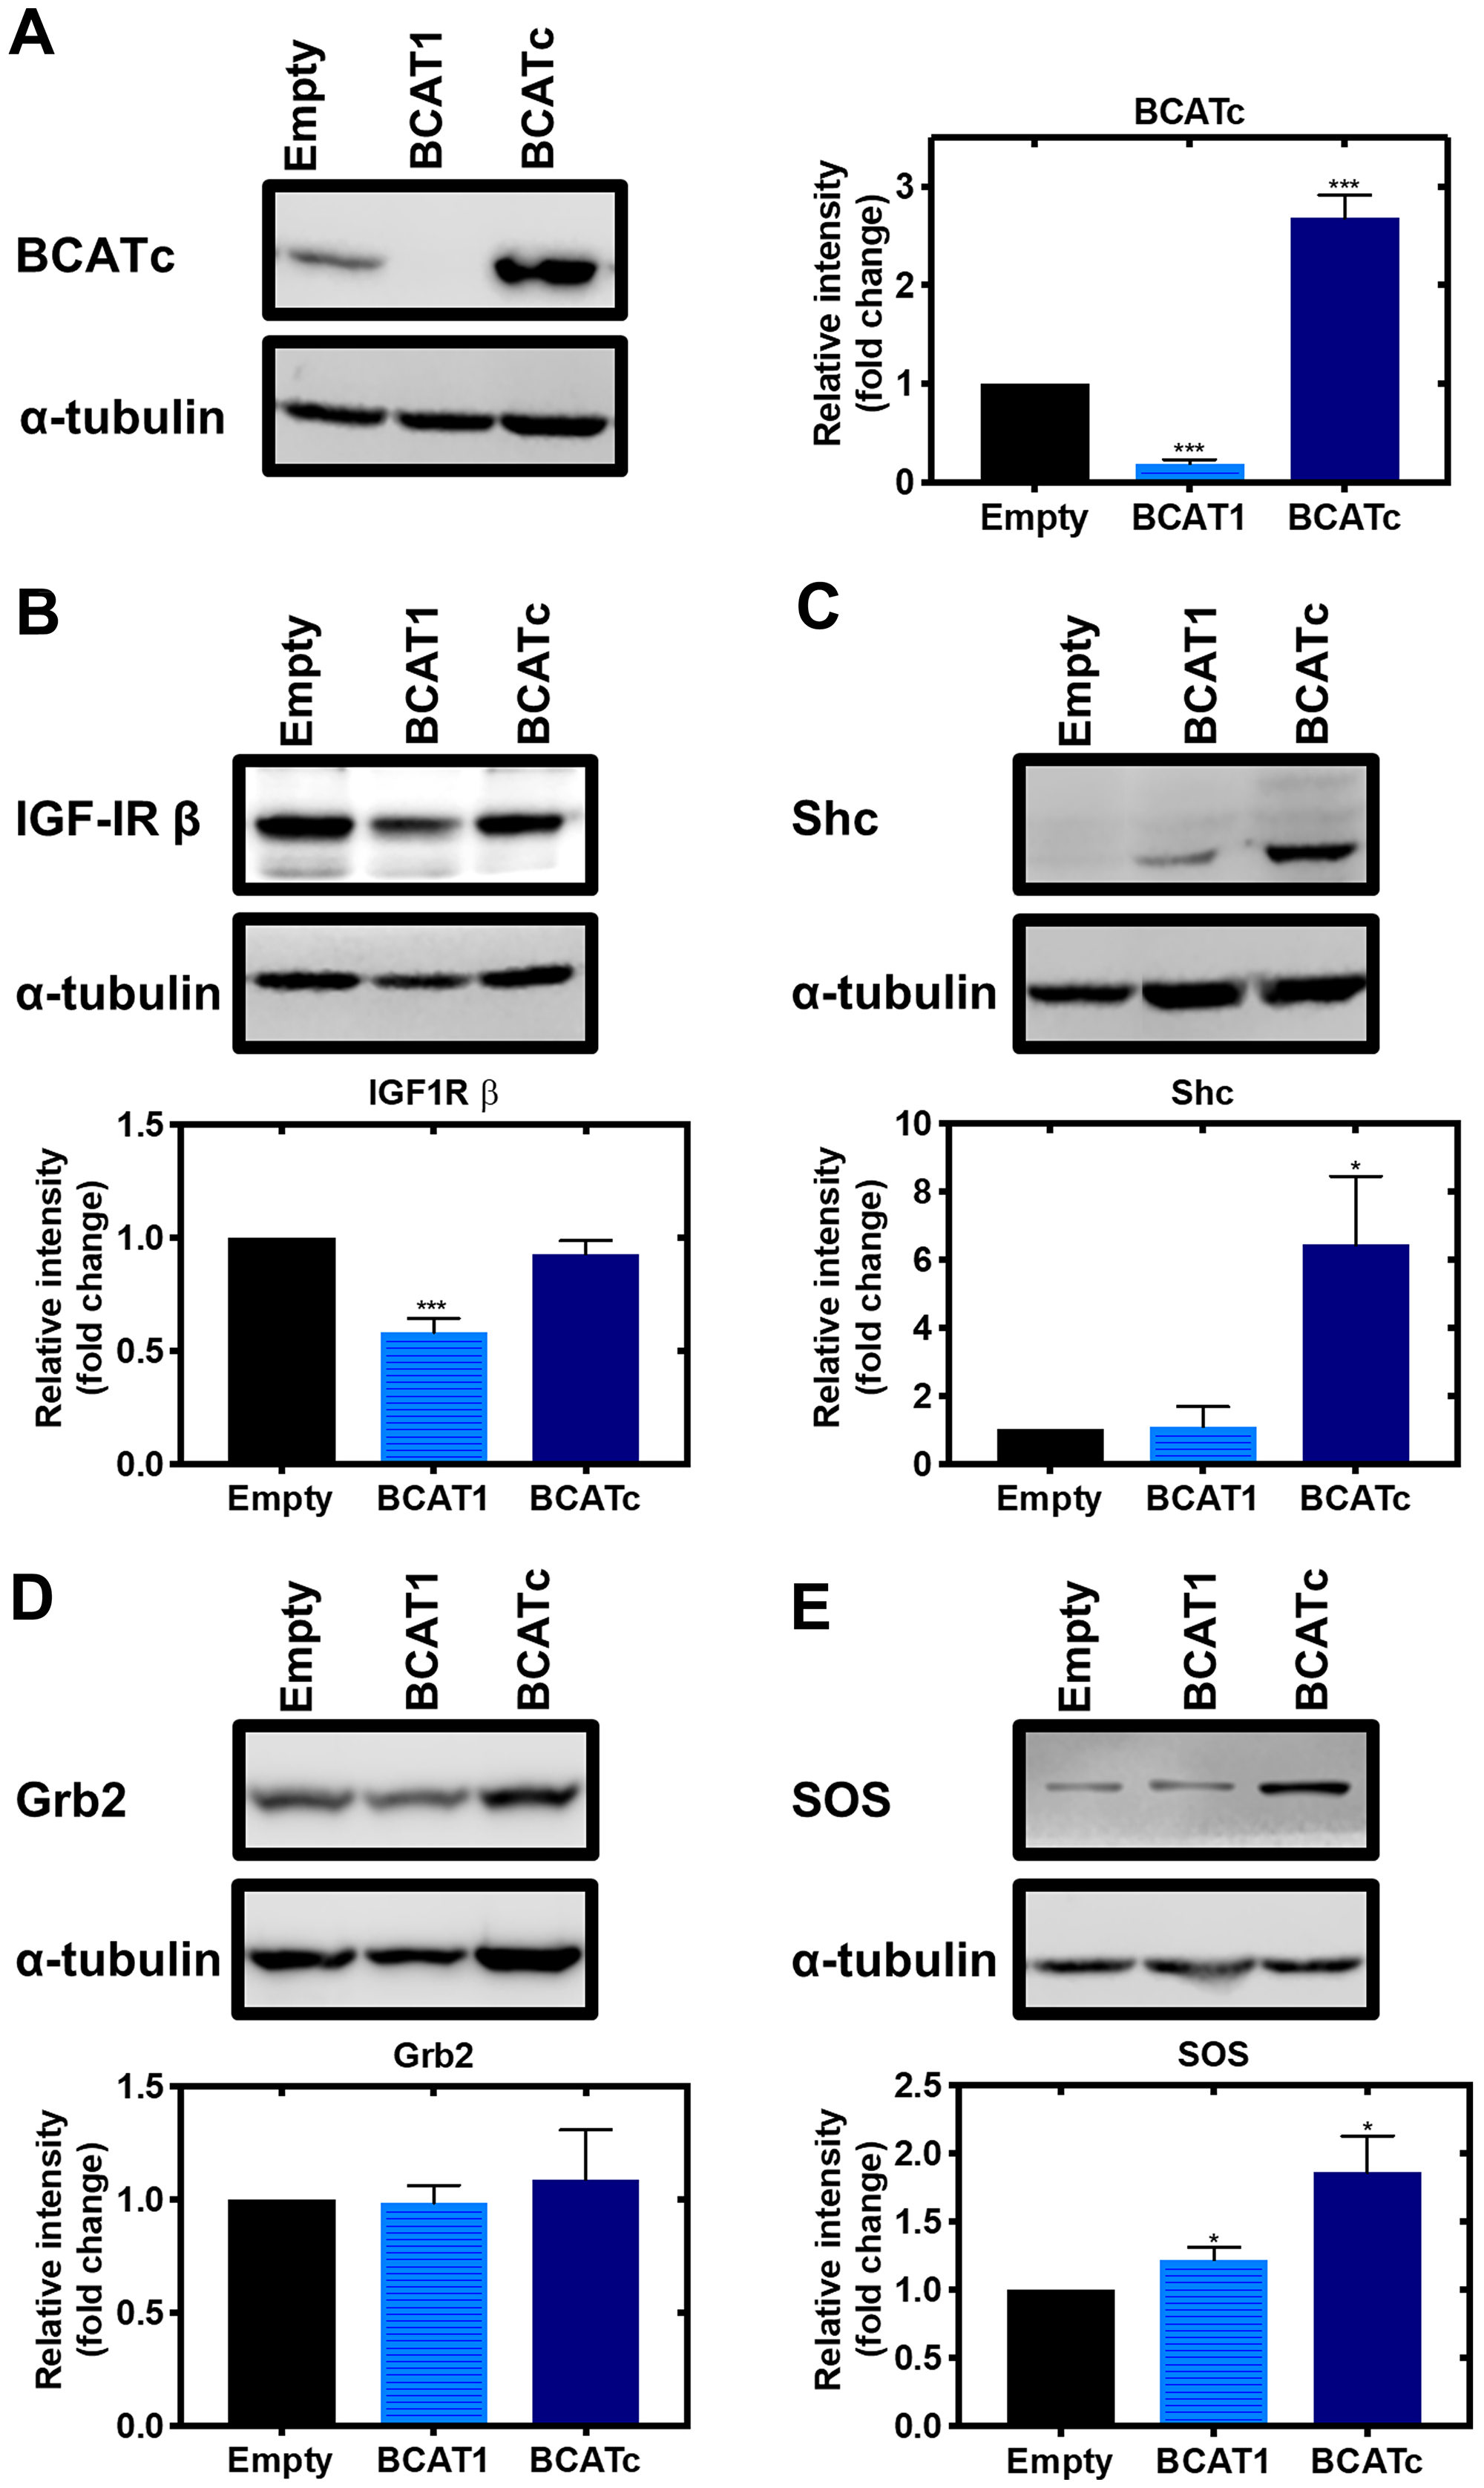 Knockdown and overexpression of BCAT1 regulates IGF-1/insulin signalling cascade in MDA-MB-231 cells.